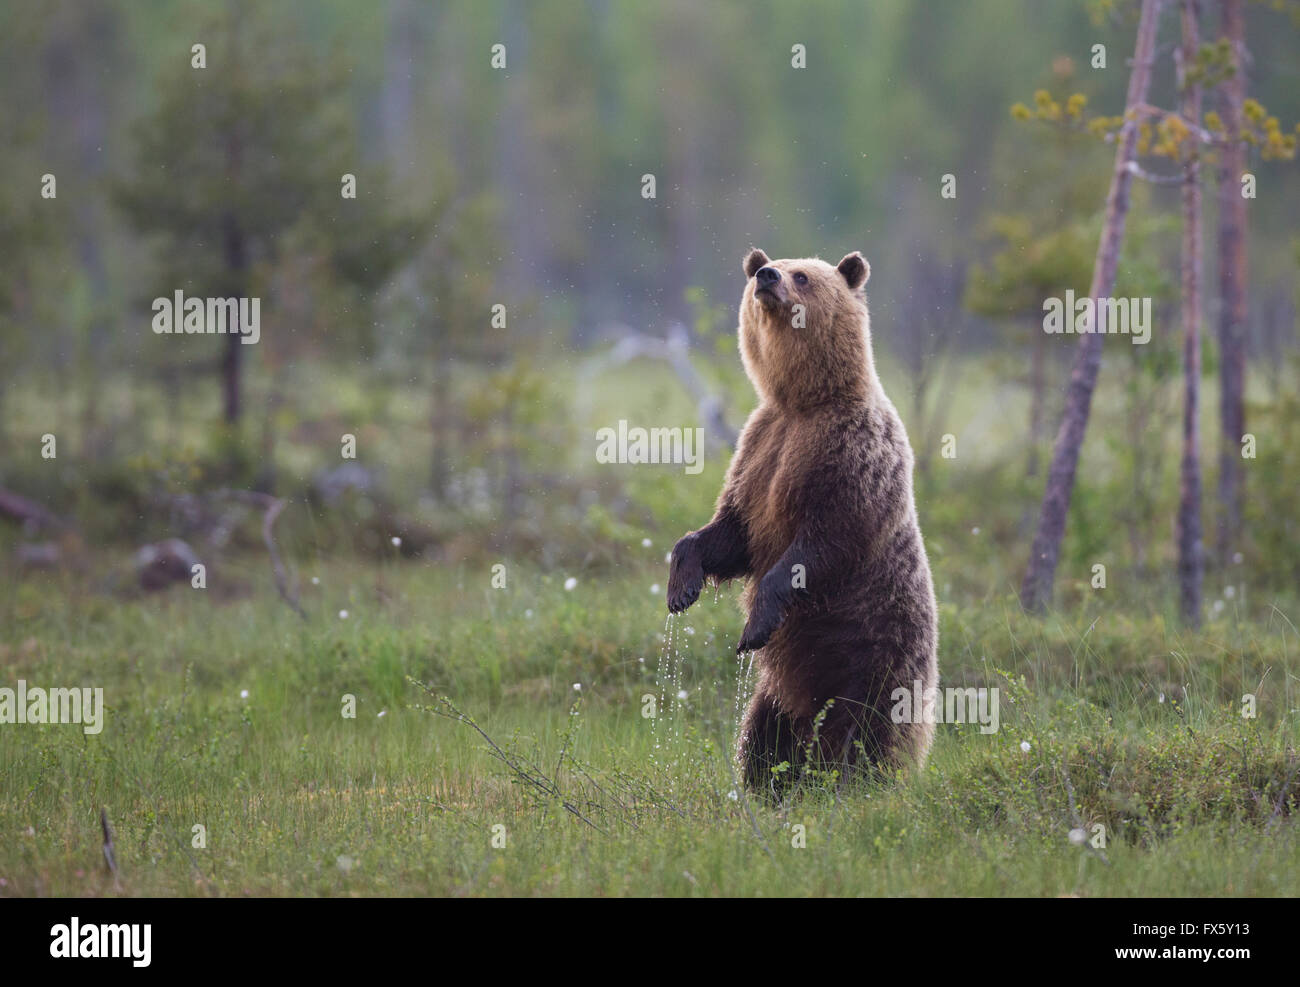 Brown bear, Ursus arctos, standing up on his back legs or back paws and sniffing in the air, Kuhmo, Finland - Stock Image